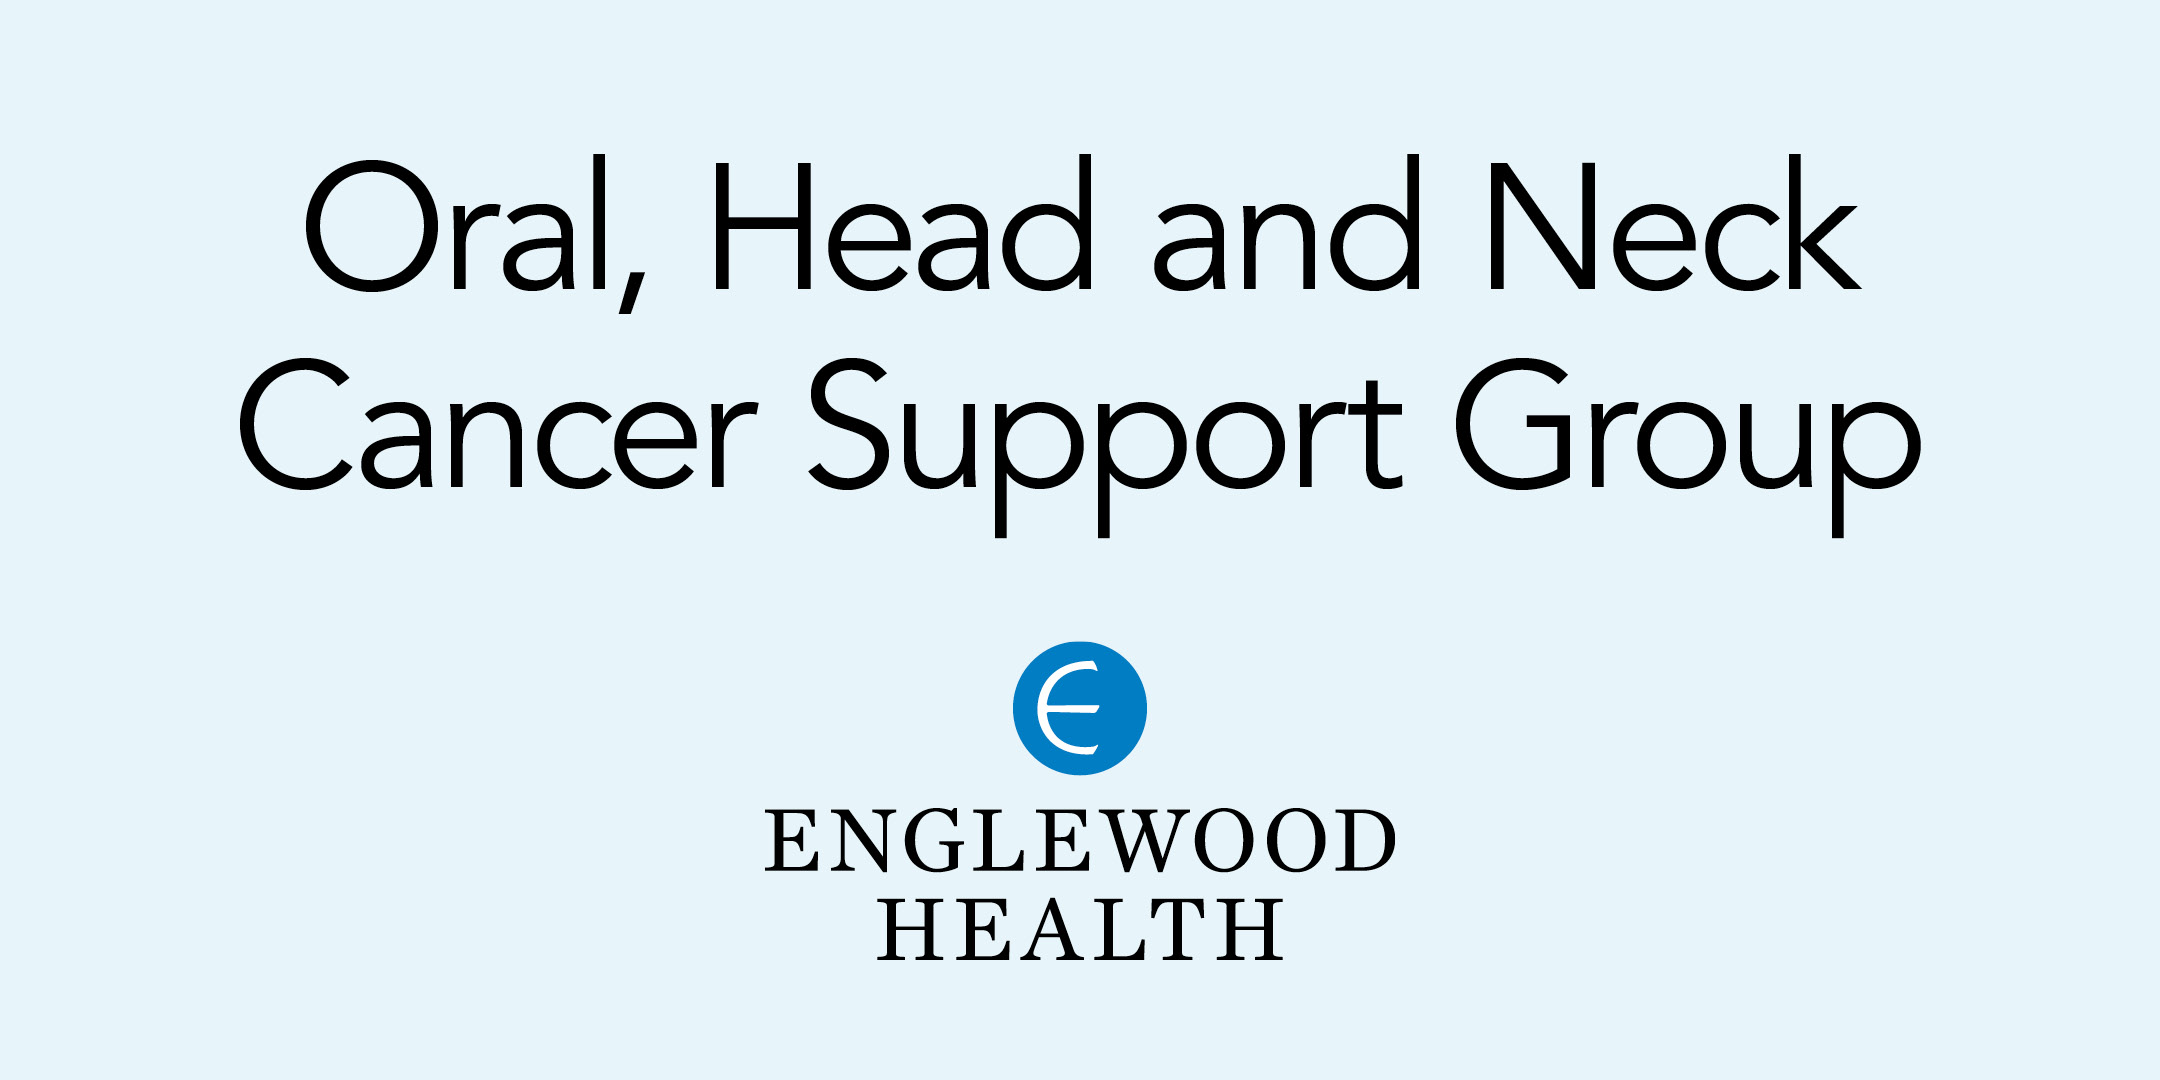 Oral, Head and Neck Cancer Support Group